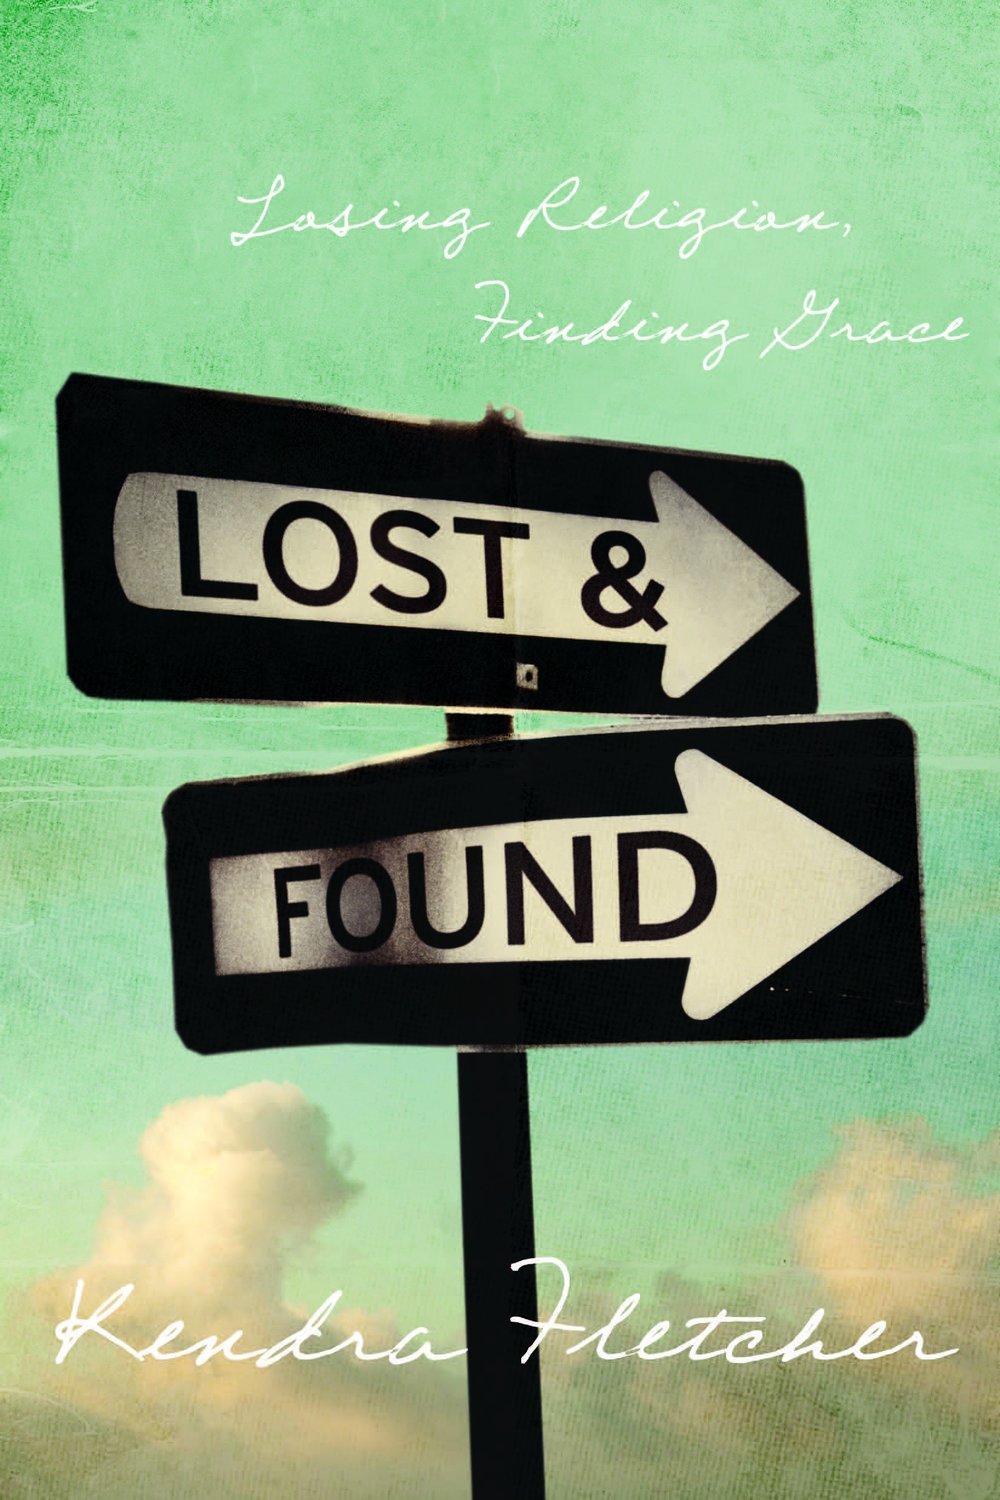 LOST & FOUND: Losing Religion, Finding Grace - Read the story of how God transformed our family after the near-deaths of three of our children. His grace set us free!